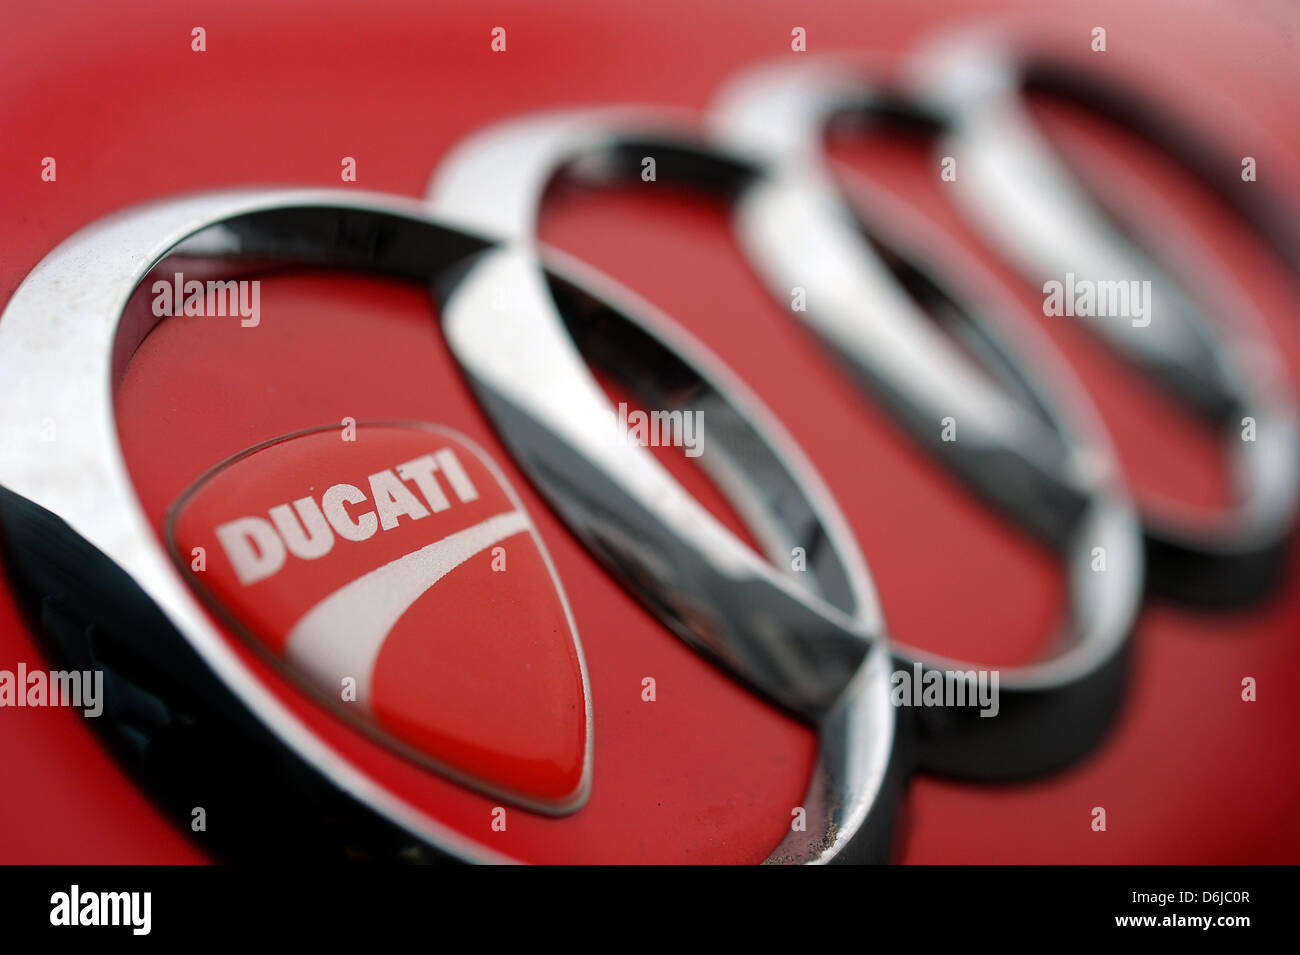 An Illustration Shows A Ducati Emblem Sticked On An Audi Radiator